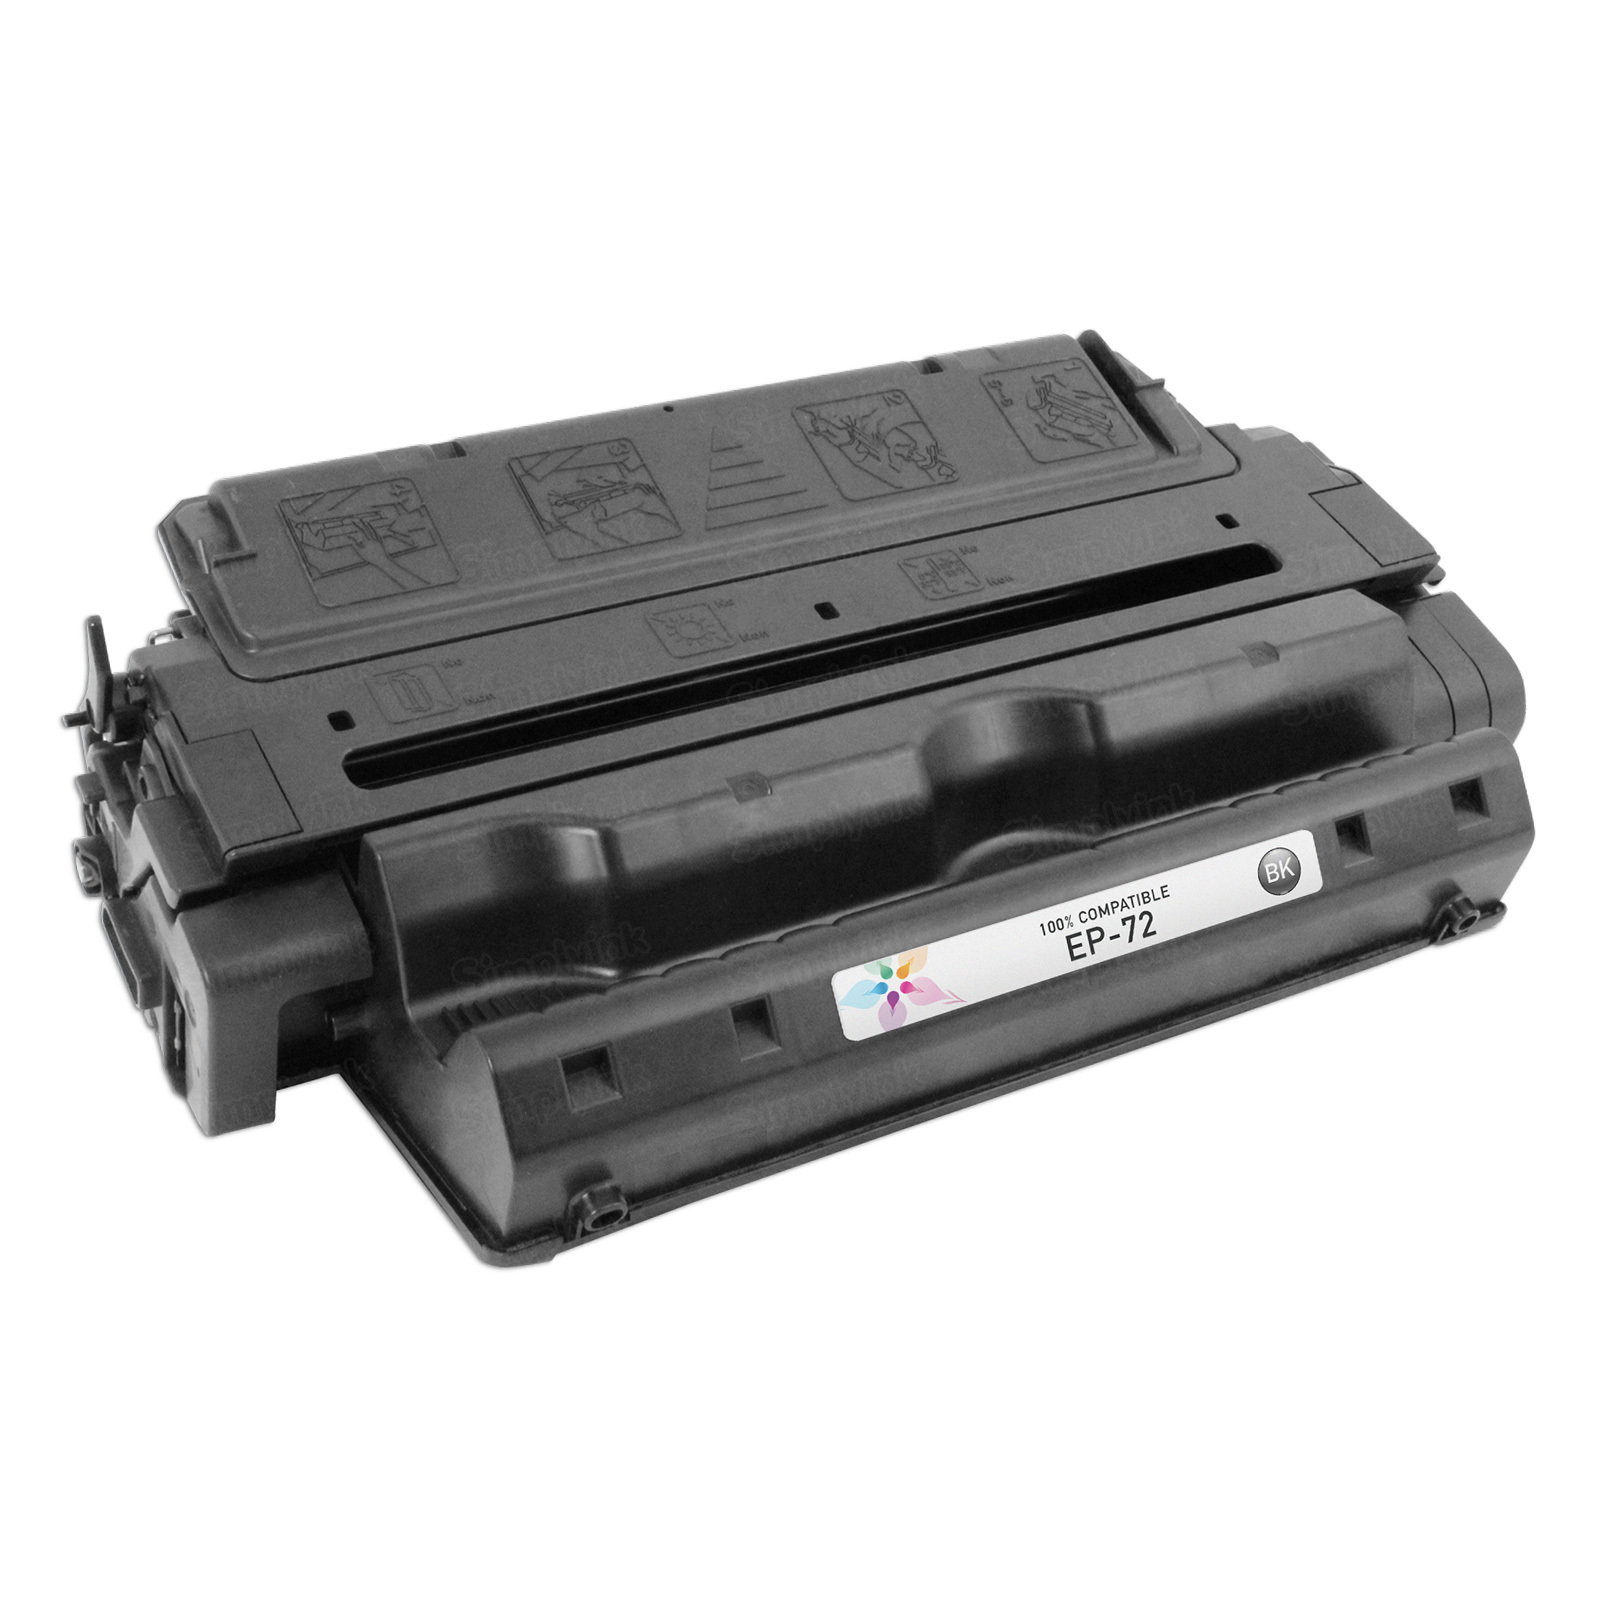 Canon EP-72) Black Toner Cartridge, Remanufactured